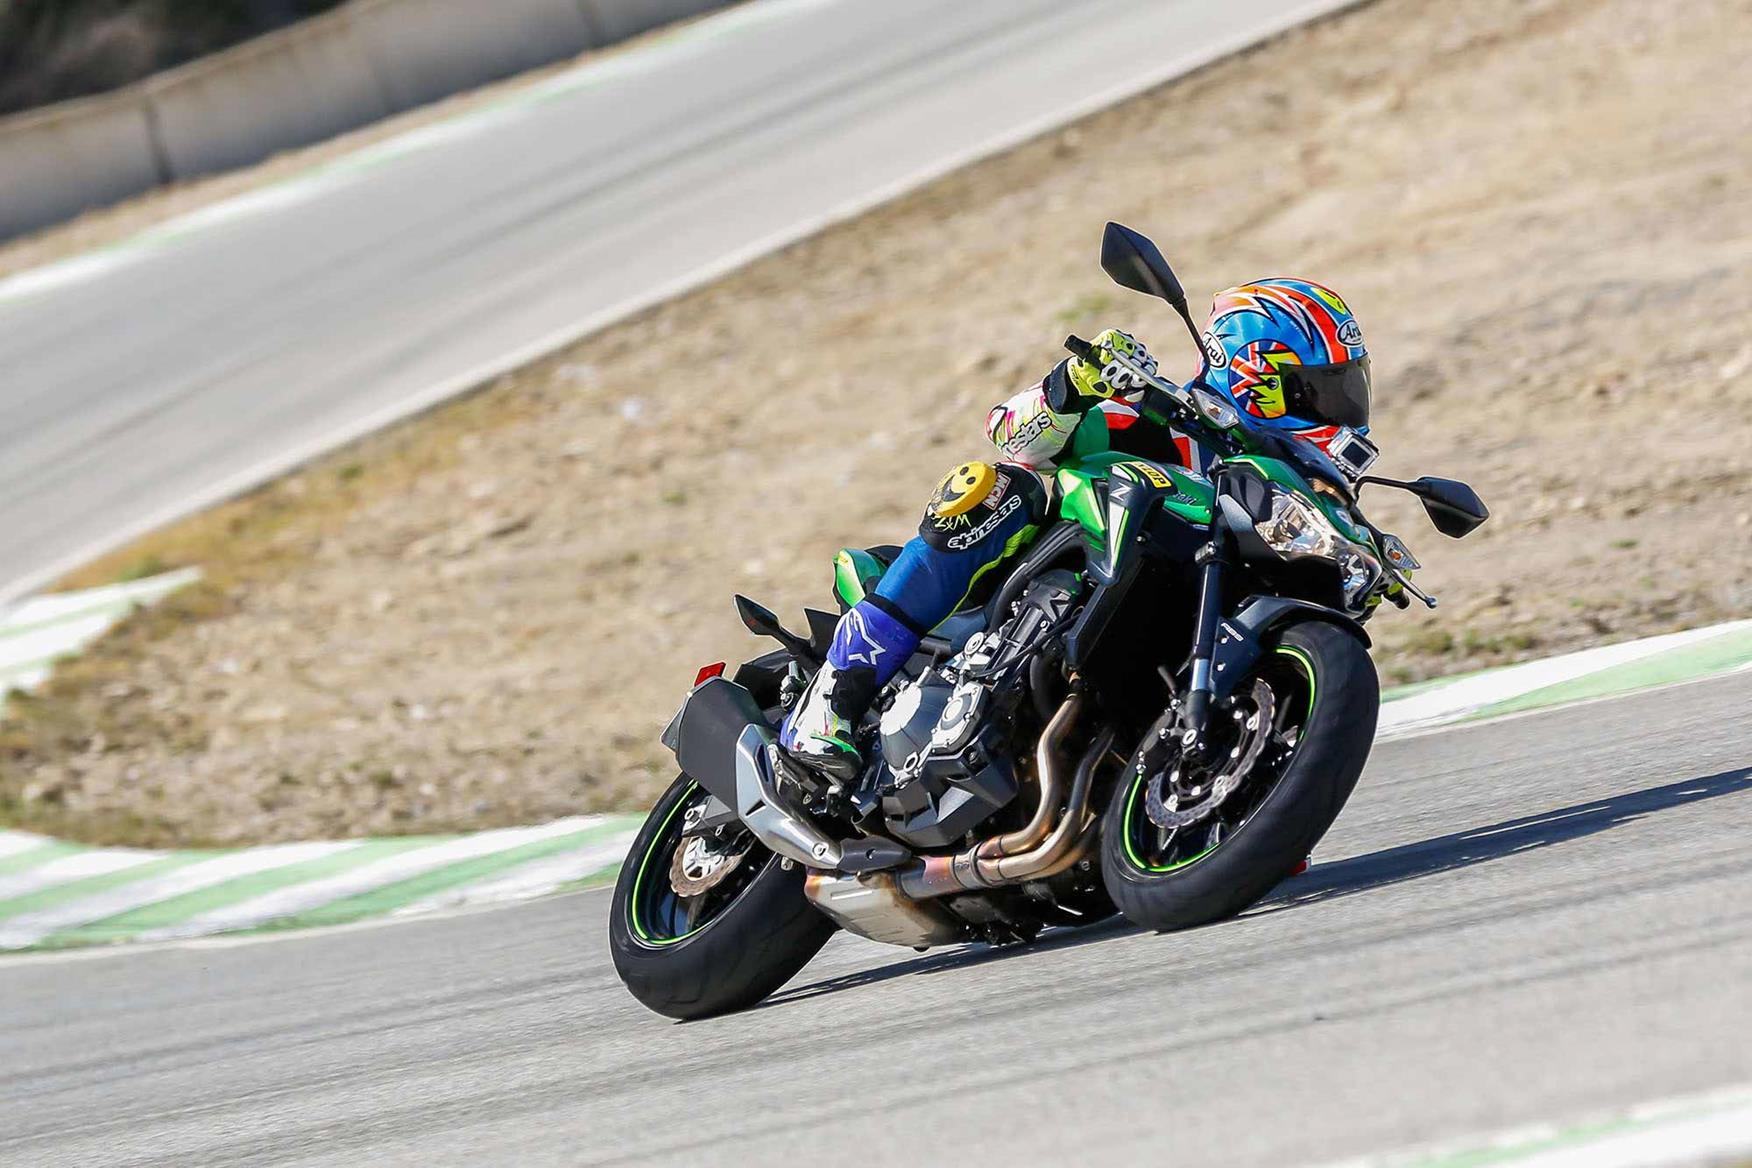 Track testing on the Kawasaki Z900